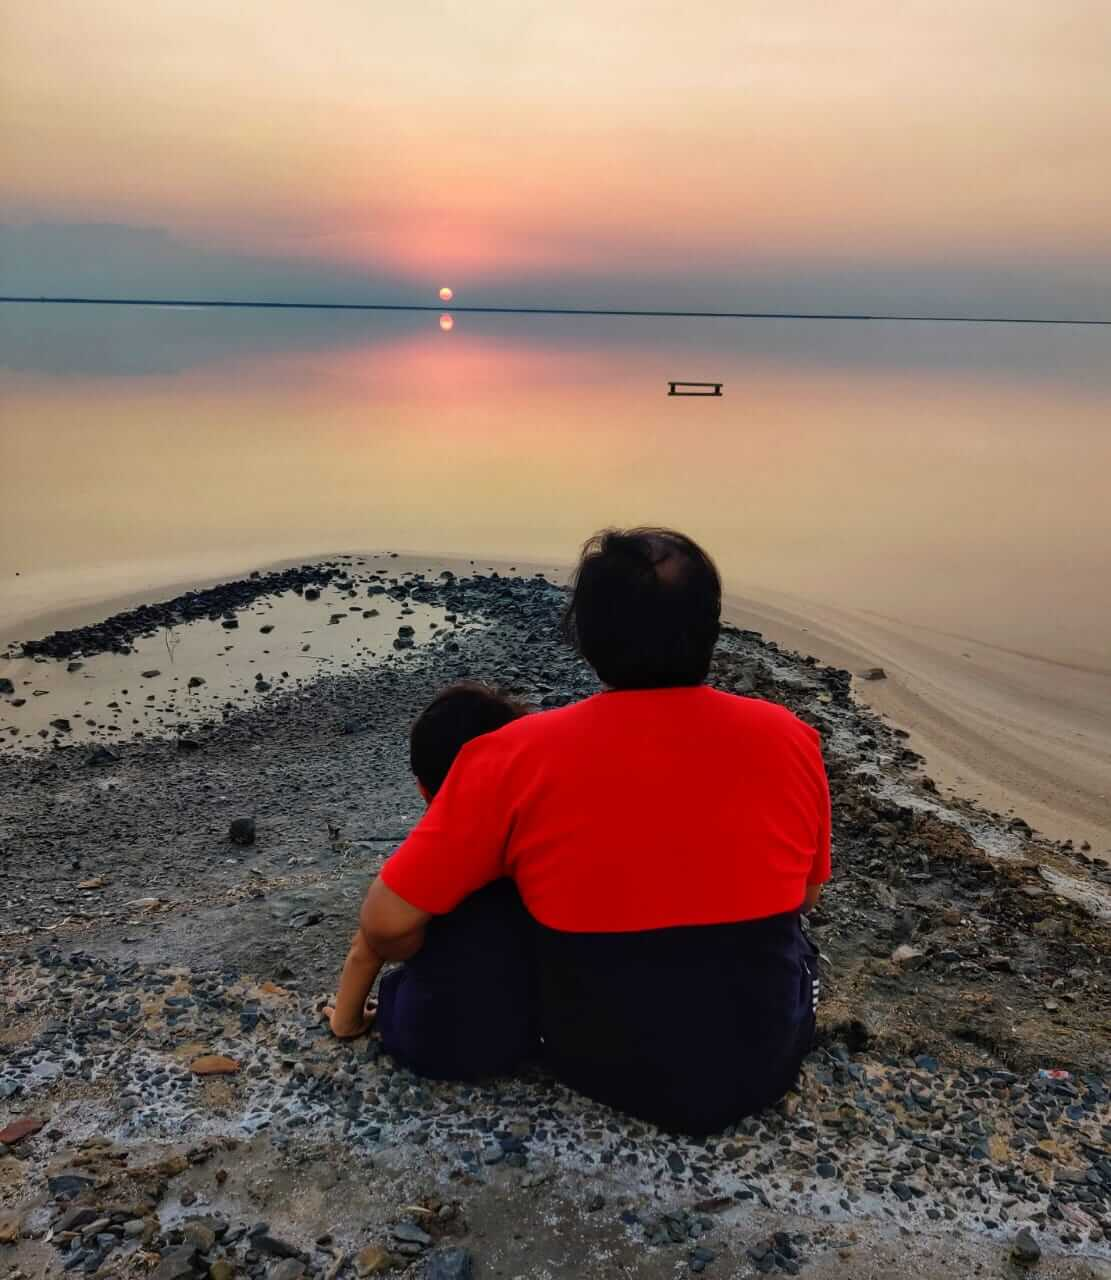 Sunset at Rann of Kutch, Gujarat